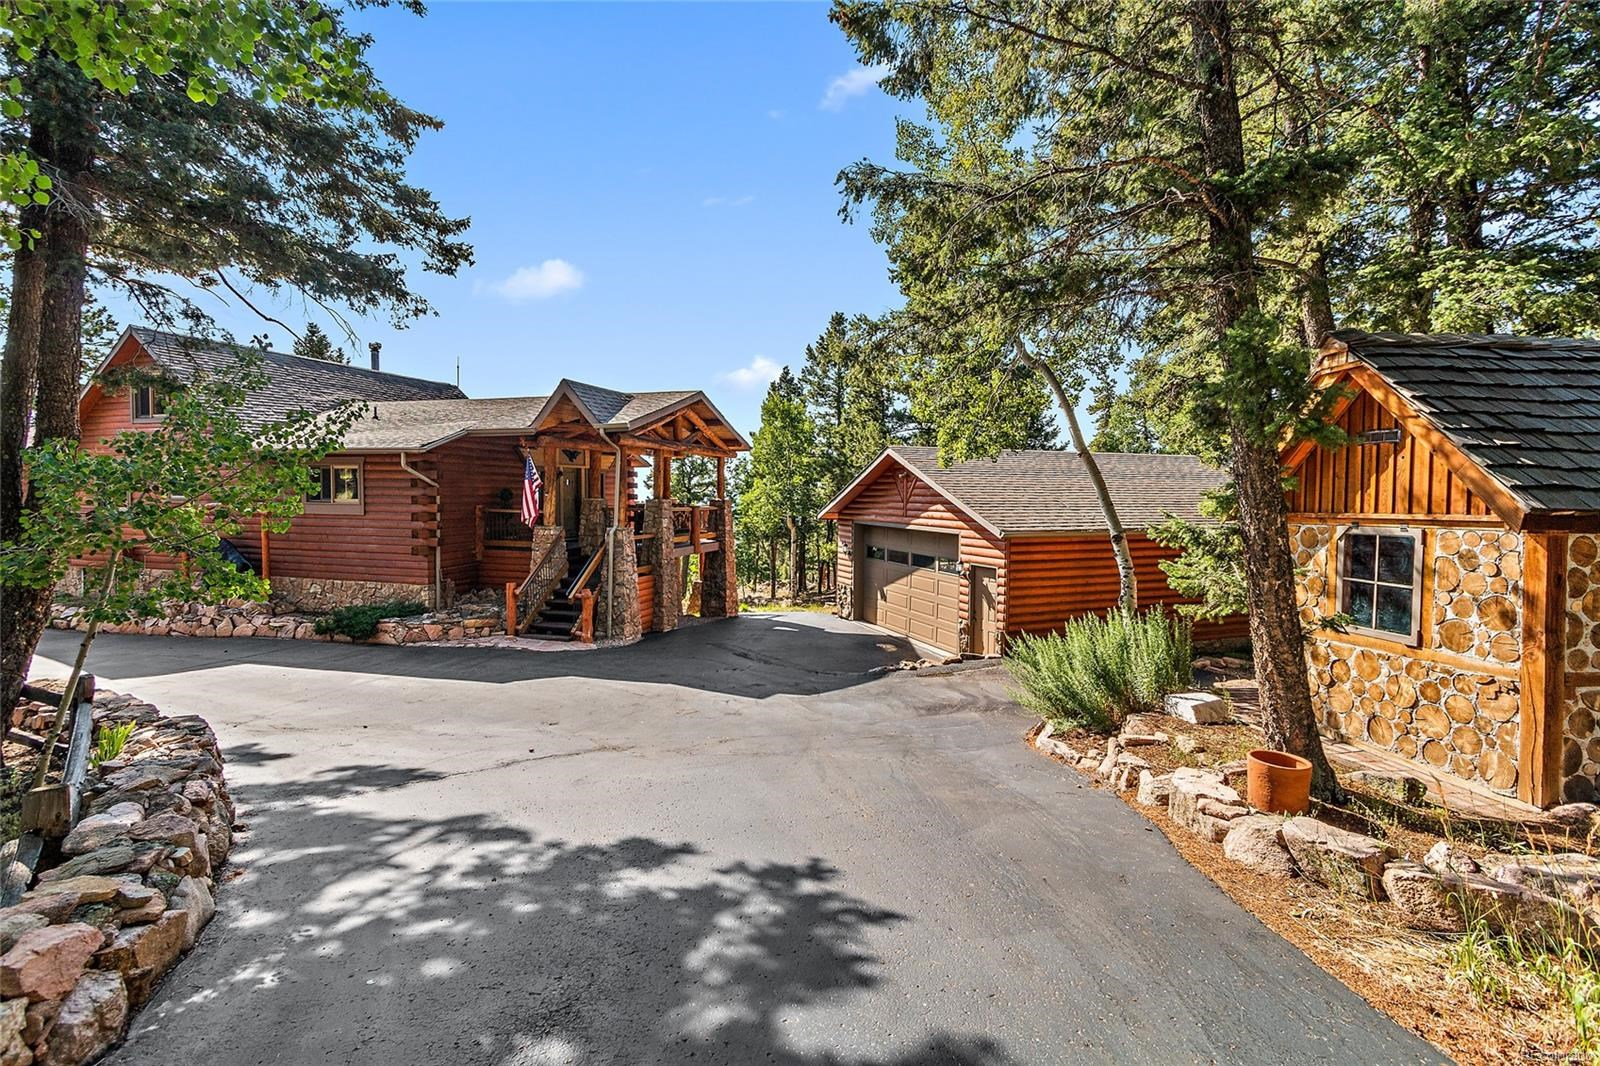 MLS# 1581293 - 3 - 13472 Riley Peak Road, Conifer, CO 80433